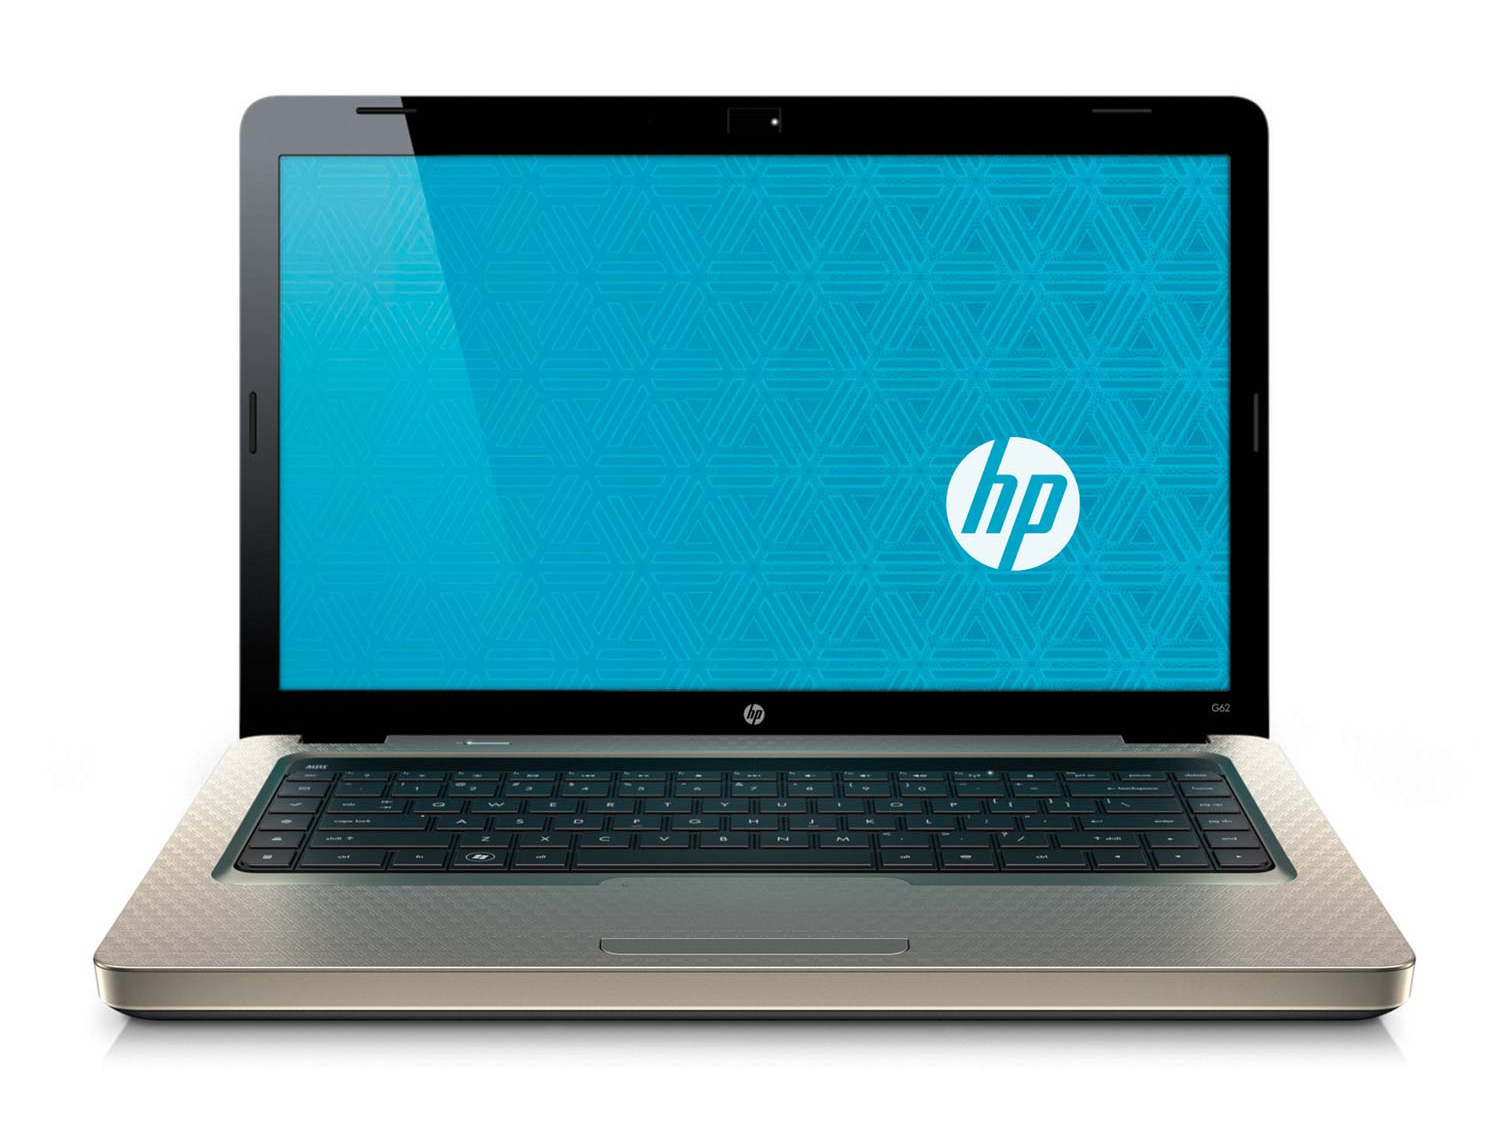 hp laptop service center in avadi, hp laptop service centers in avadi